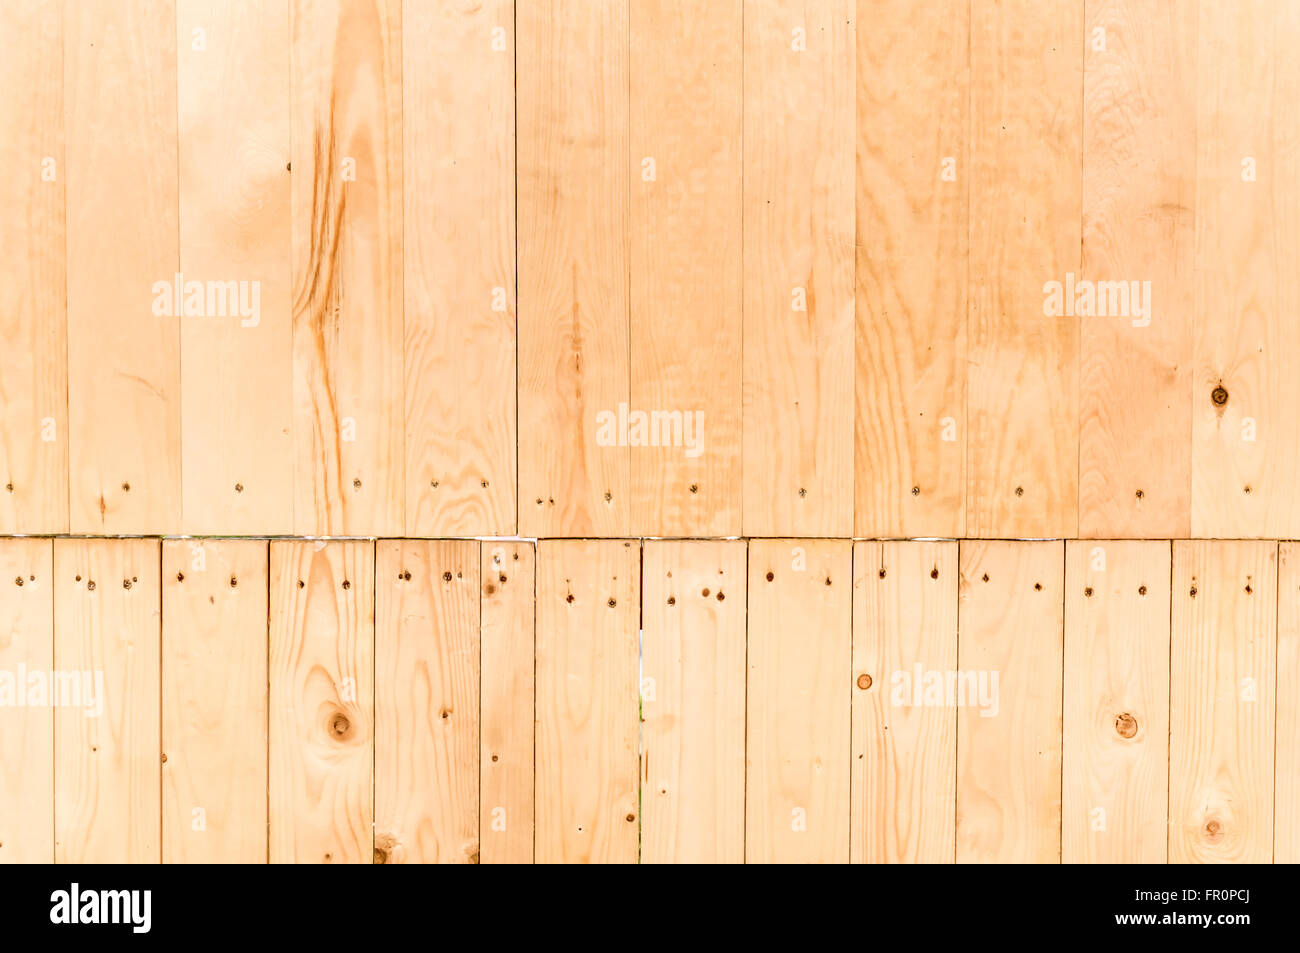 Light Brown Wood Panel Background With Different Size